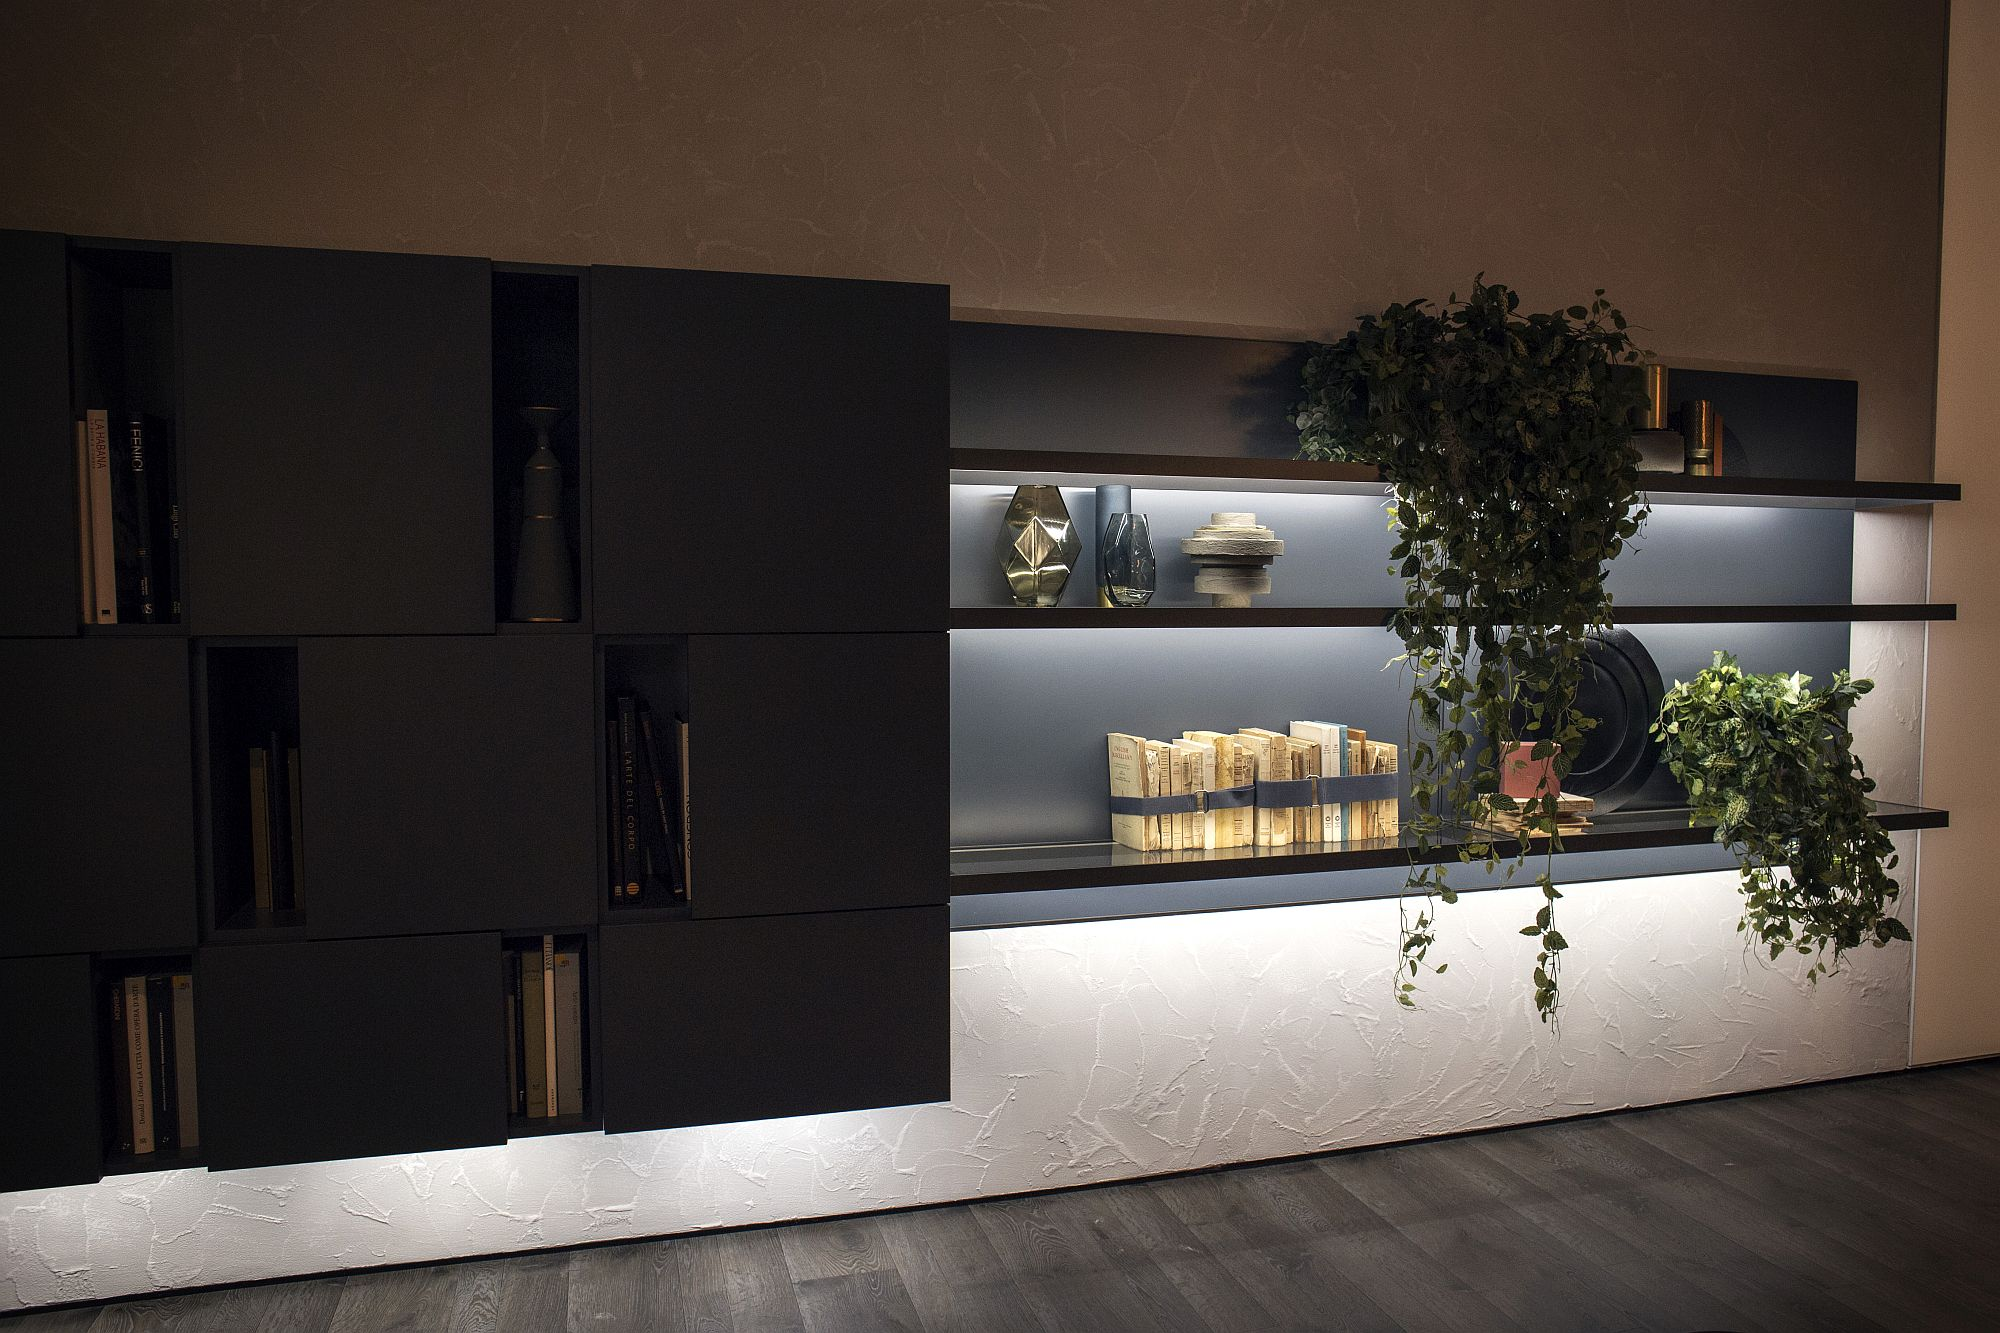 Combine-floating-cabinets-with-open-shelvinga-nd-LED-lighting-for-that-complete-storage-and-display-unit